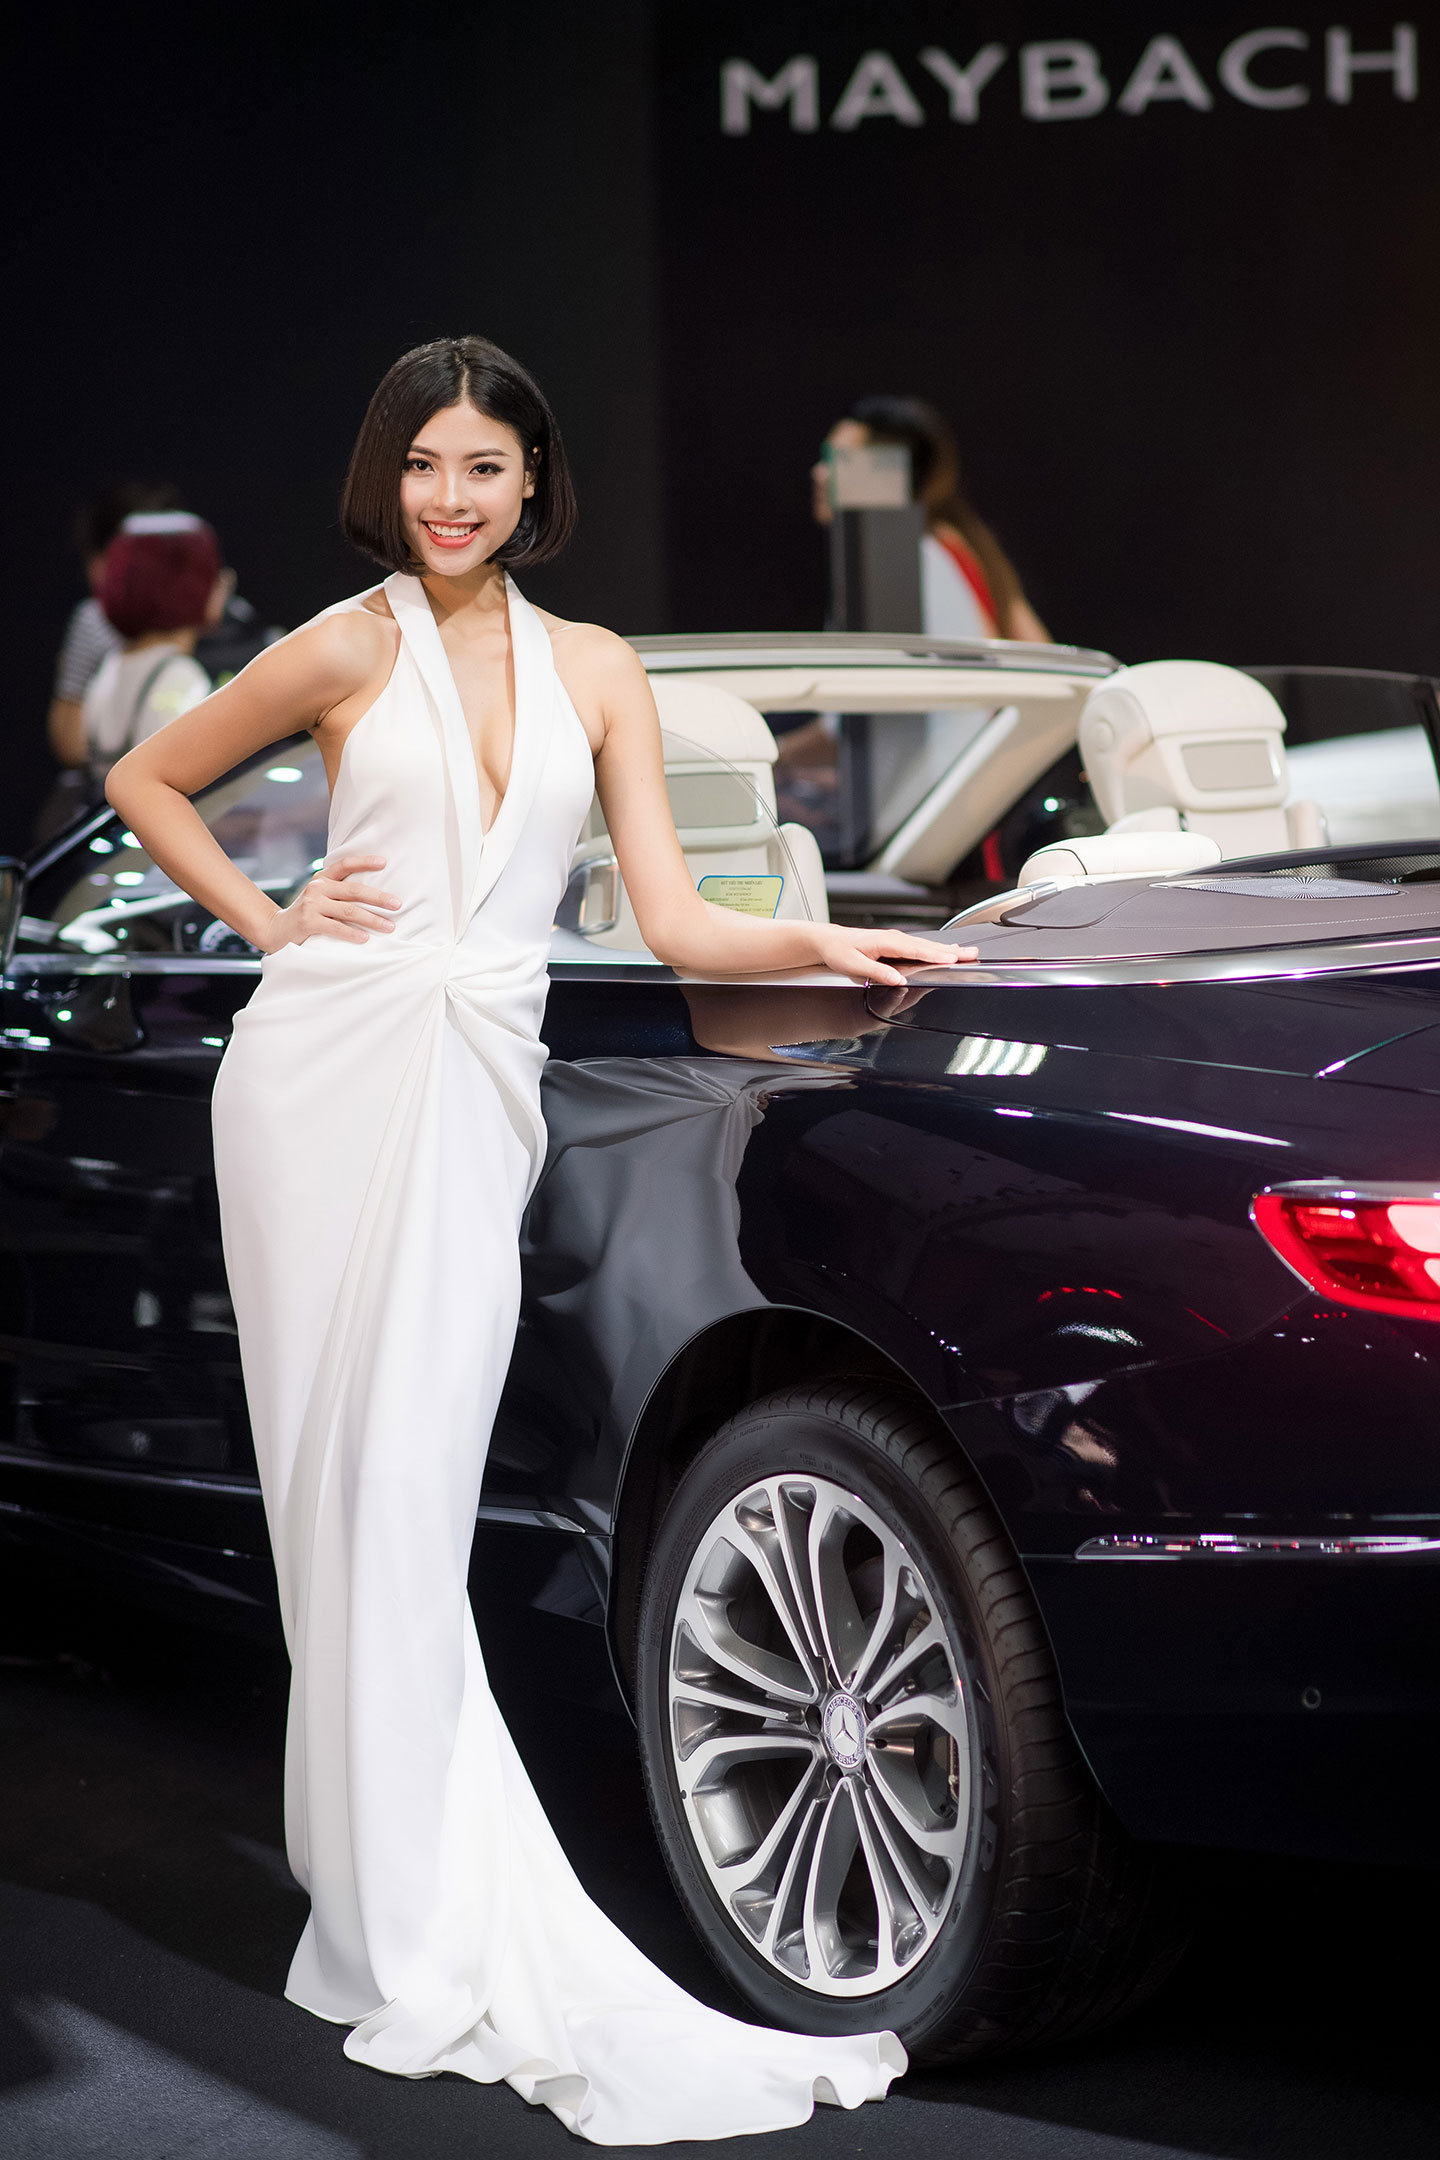 mercedes-benz-fascination-2017-nguoidep-2.jpg